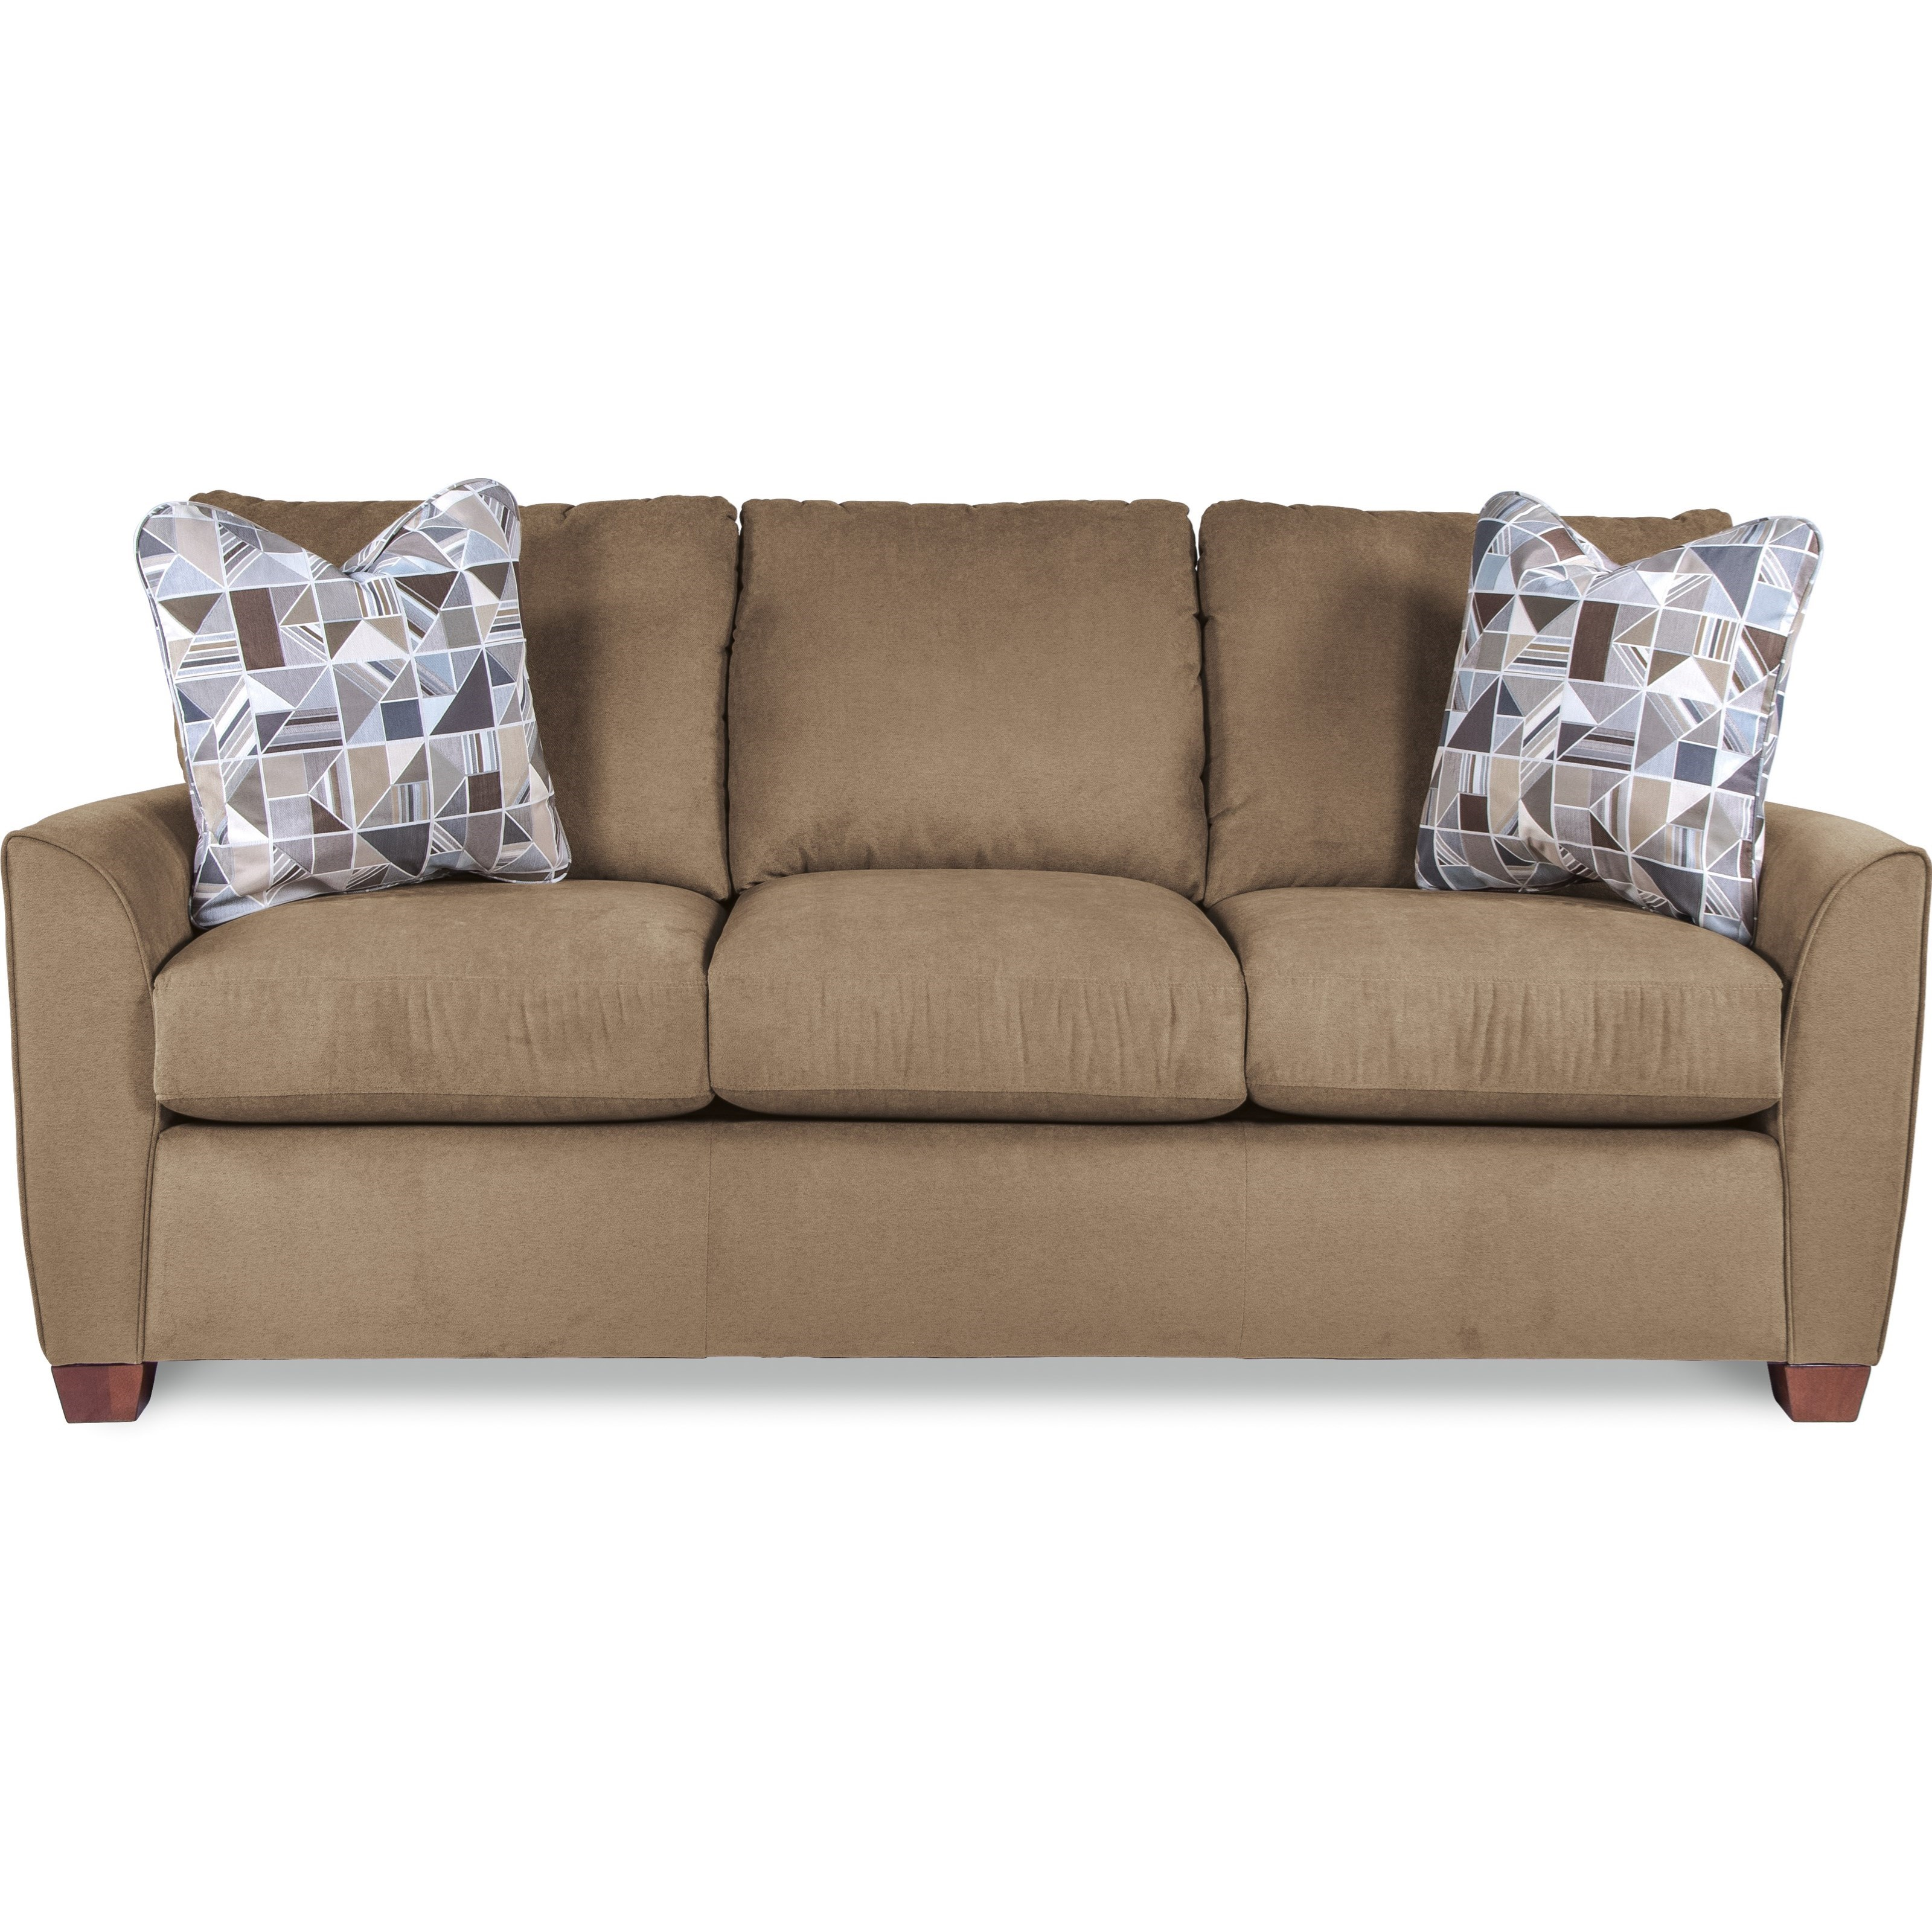 Big Sofa Back Cushions La Z Boy Amy Casual Sofa With Premier Comfortcore Cushions